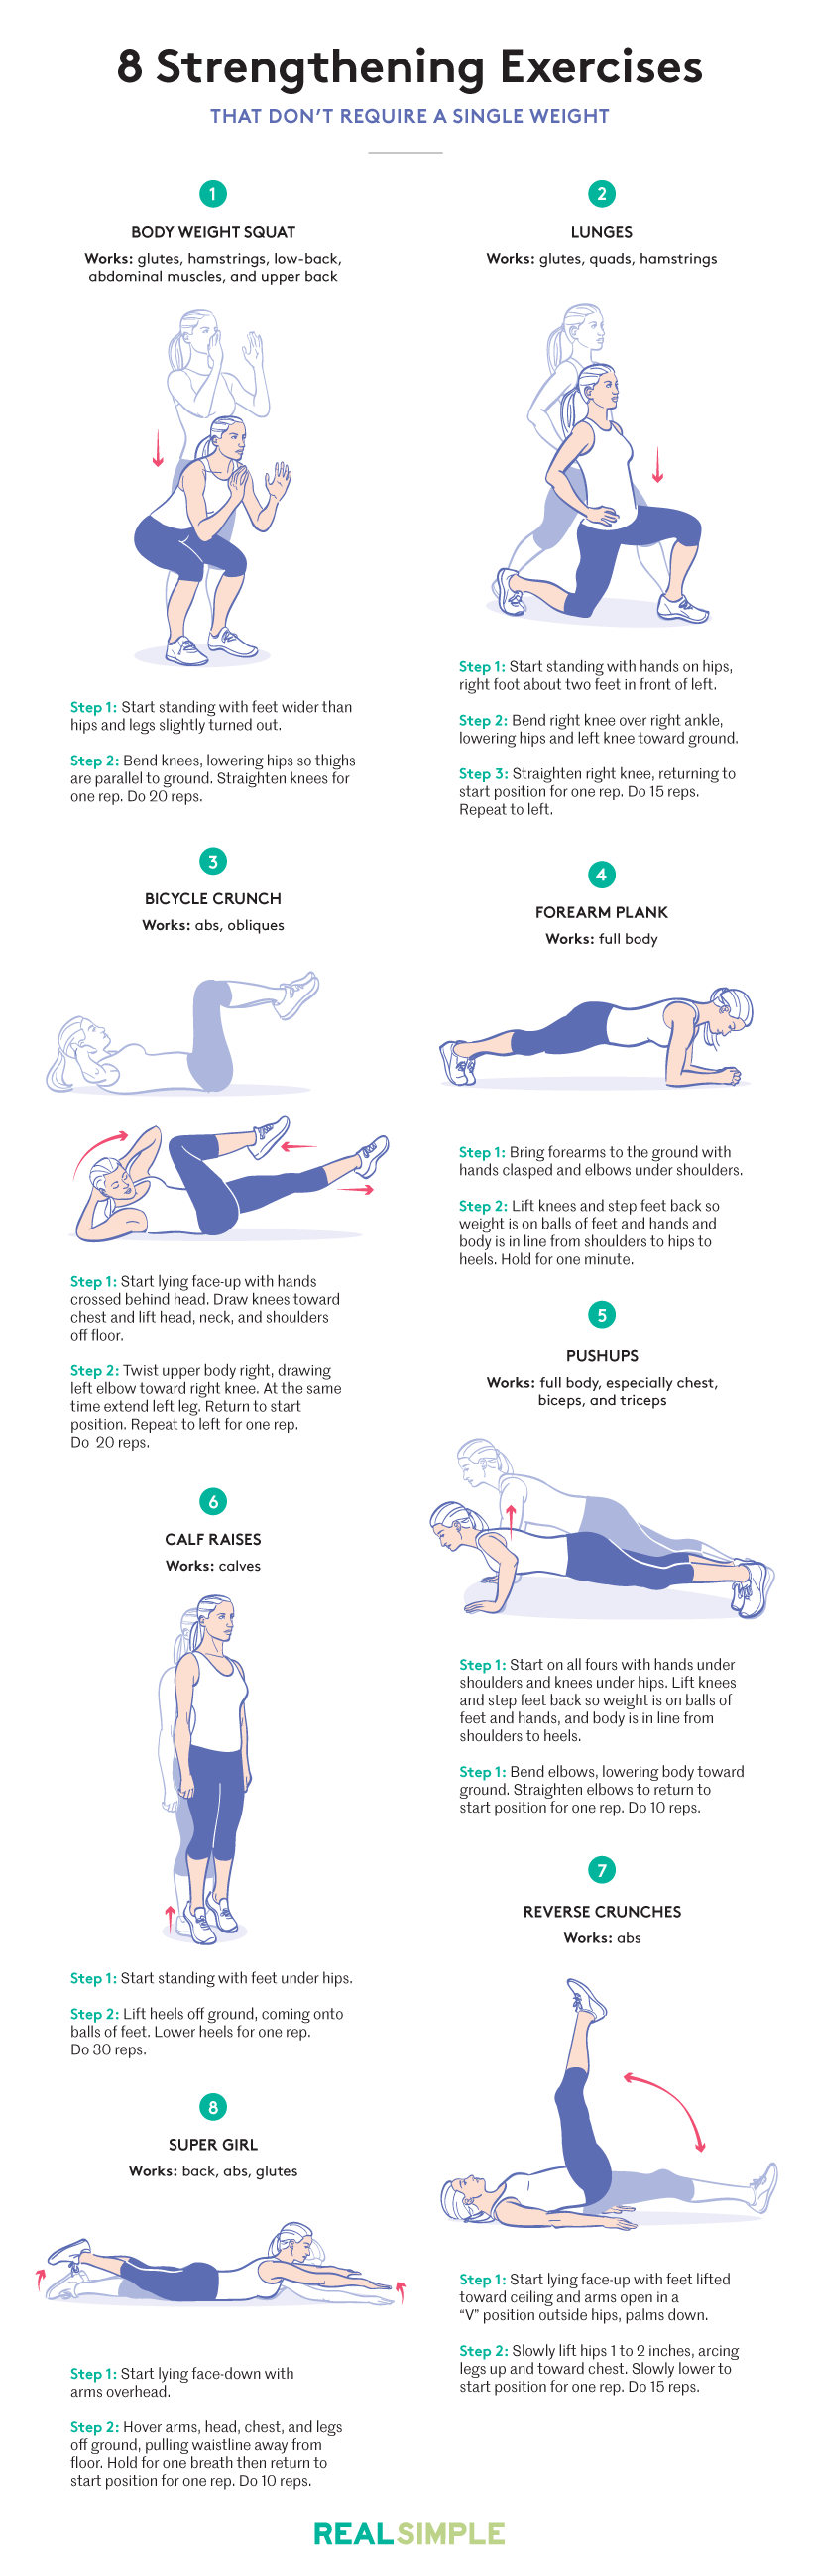 8 best bodyweight exercises: Pictures and steps